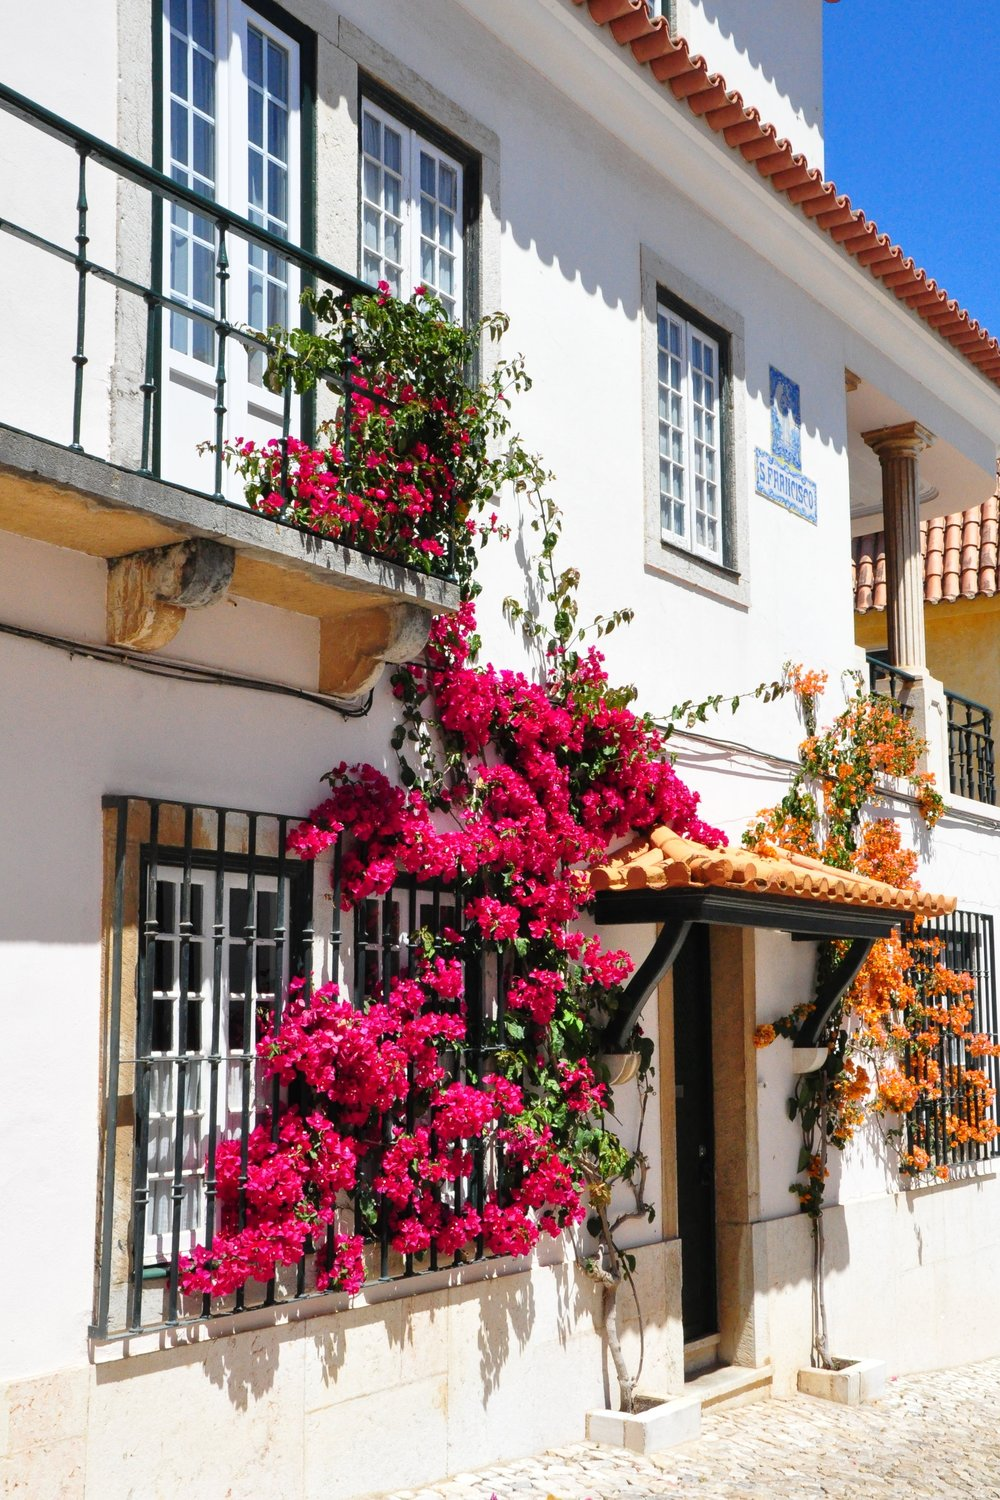 Bougainvillea-walls-portugal.jpg